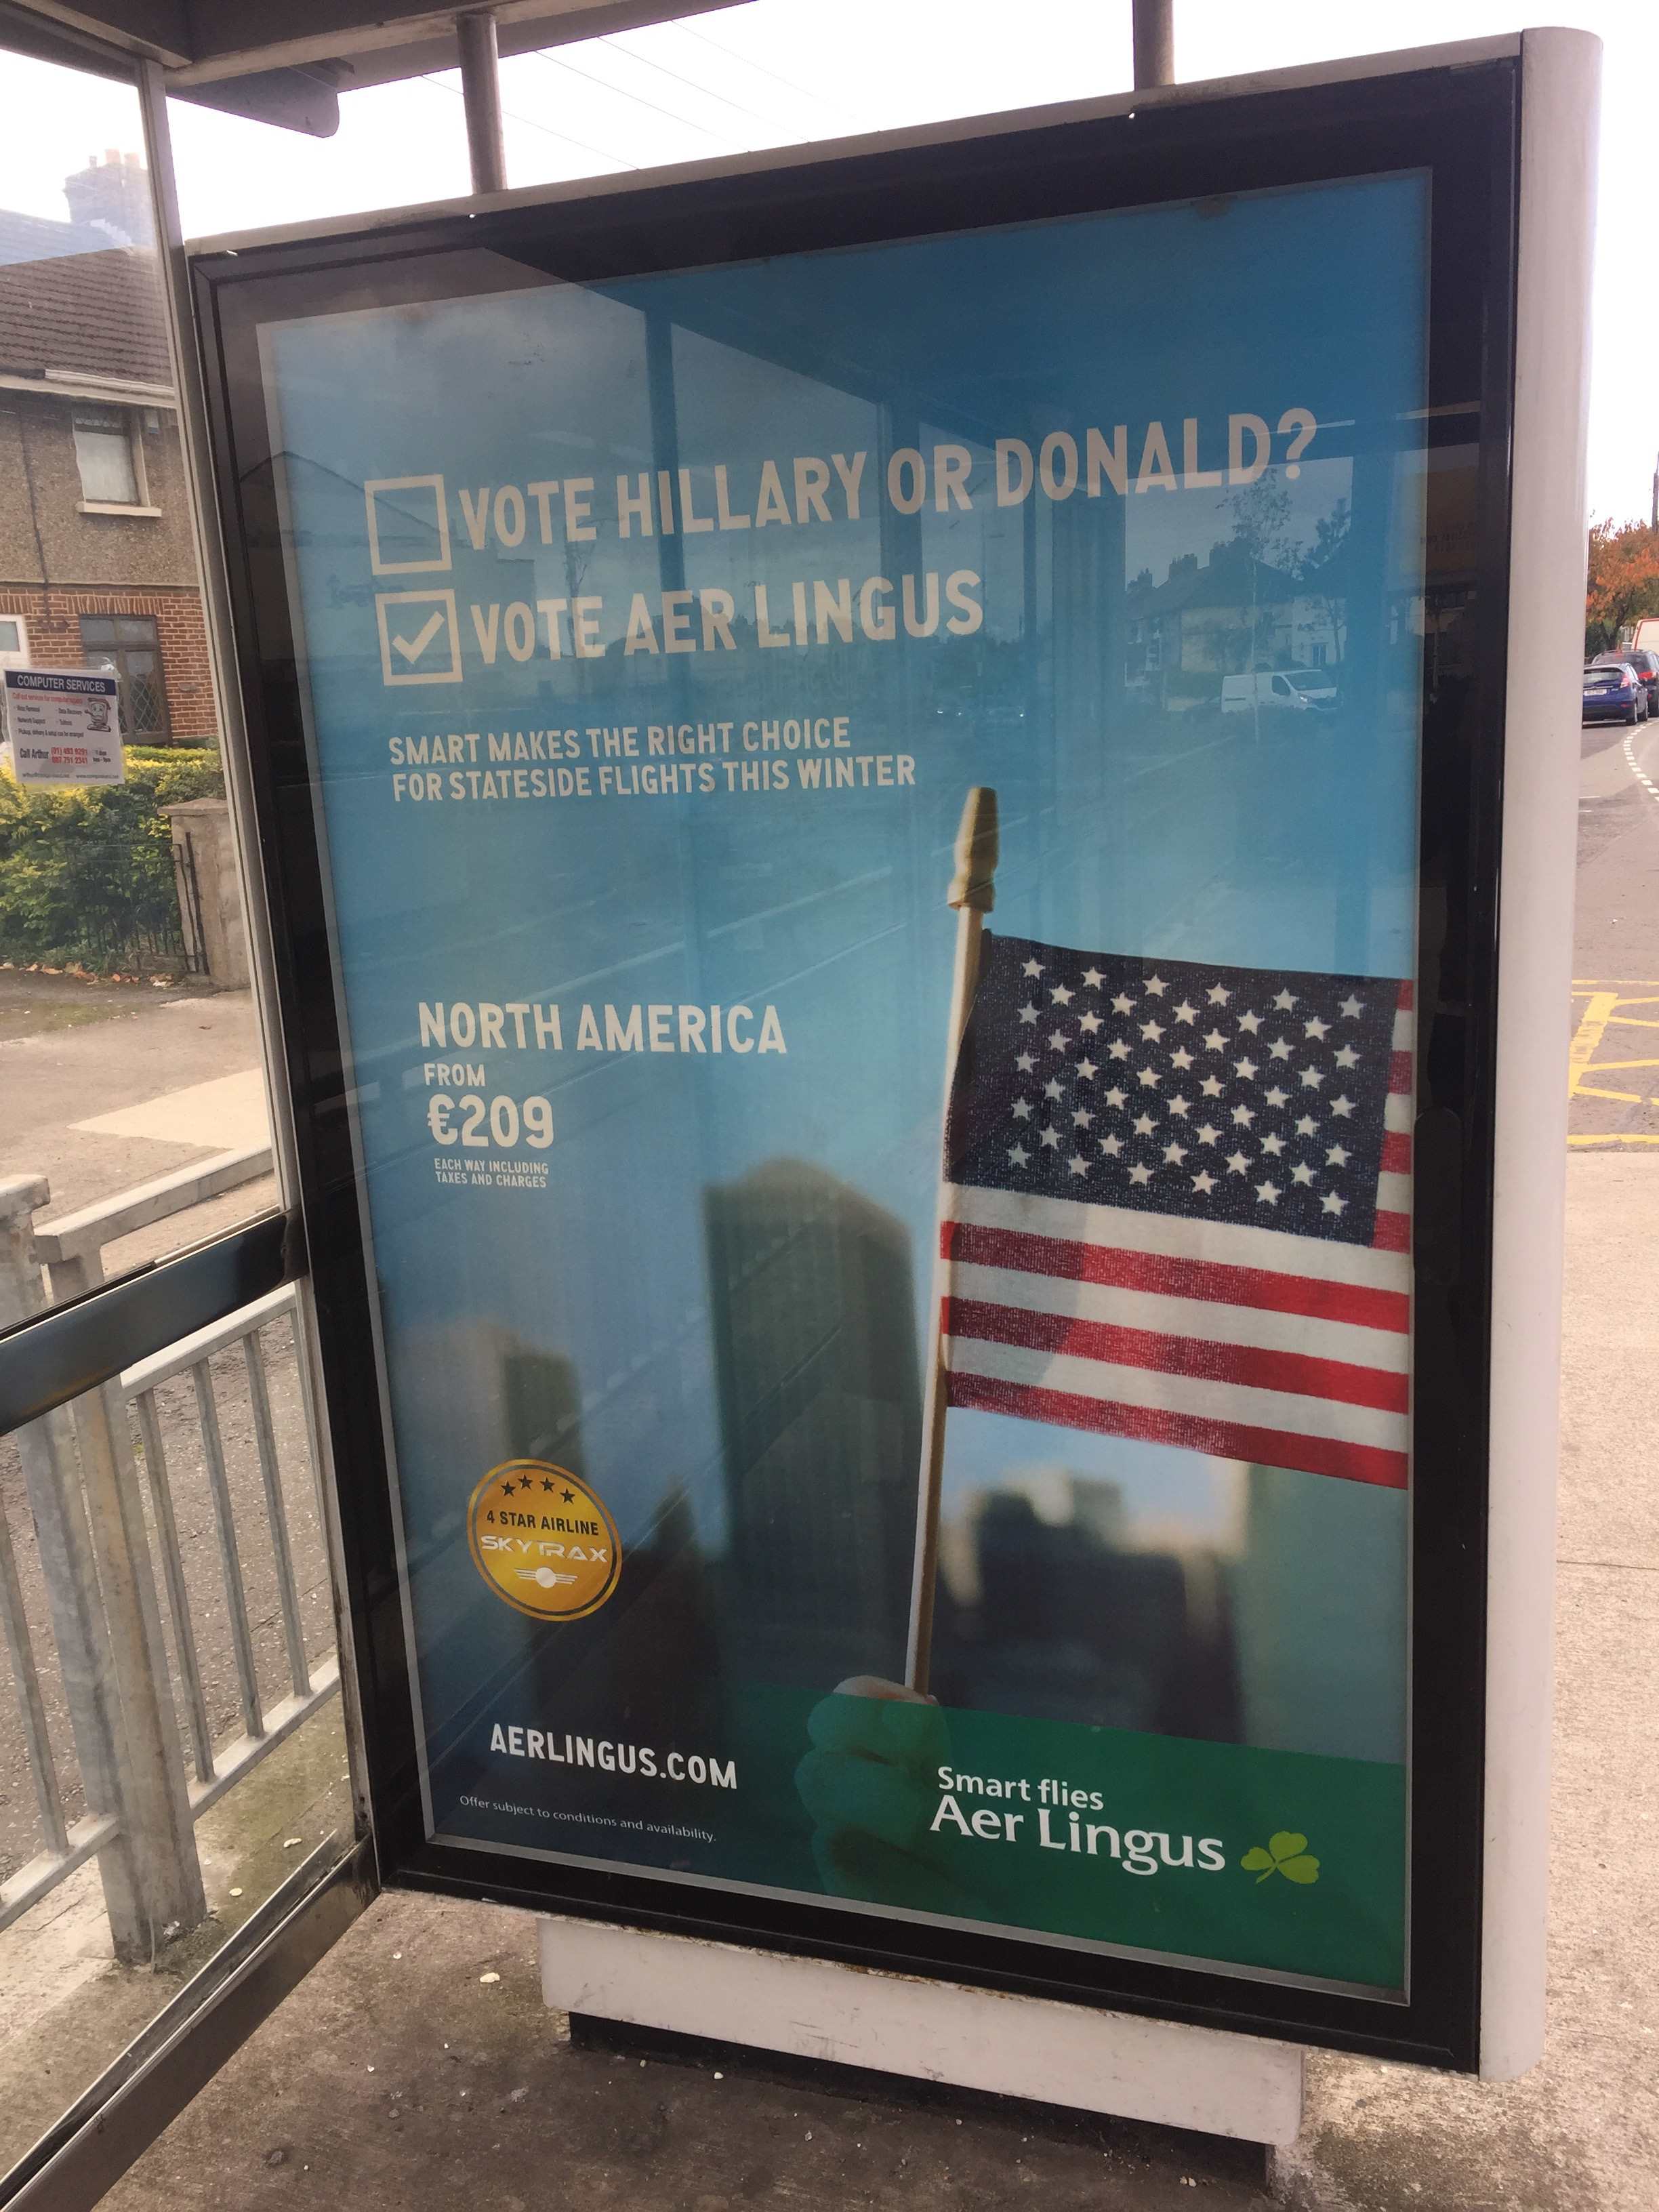 Aer Lingus – Vote Hillary or Donald? Vote Aer Lingus